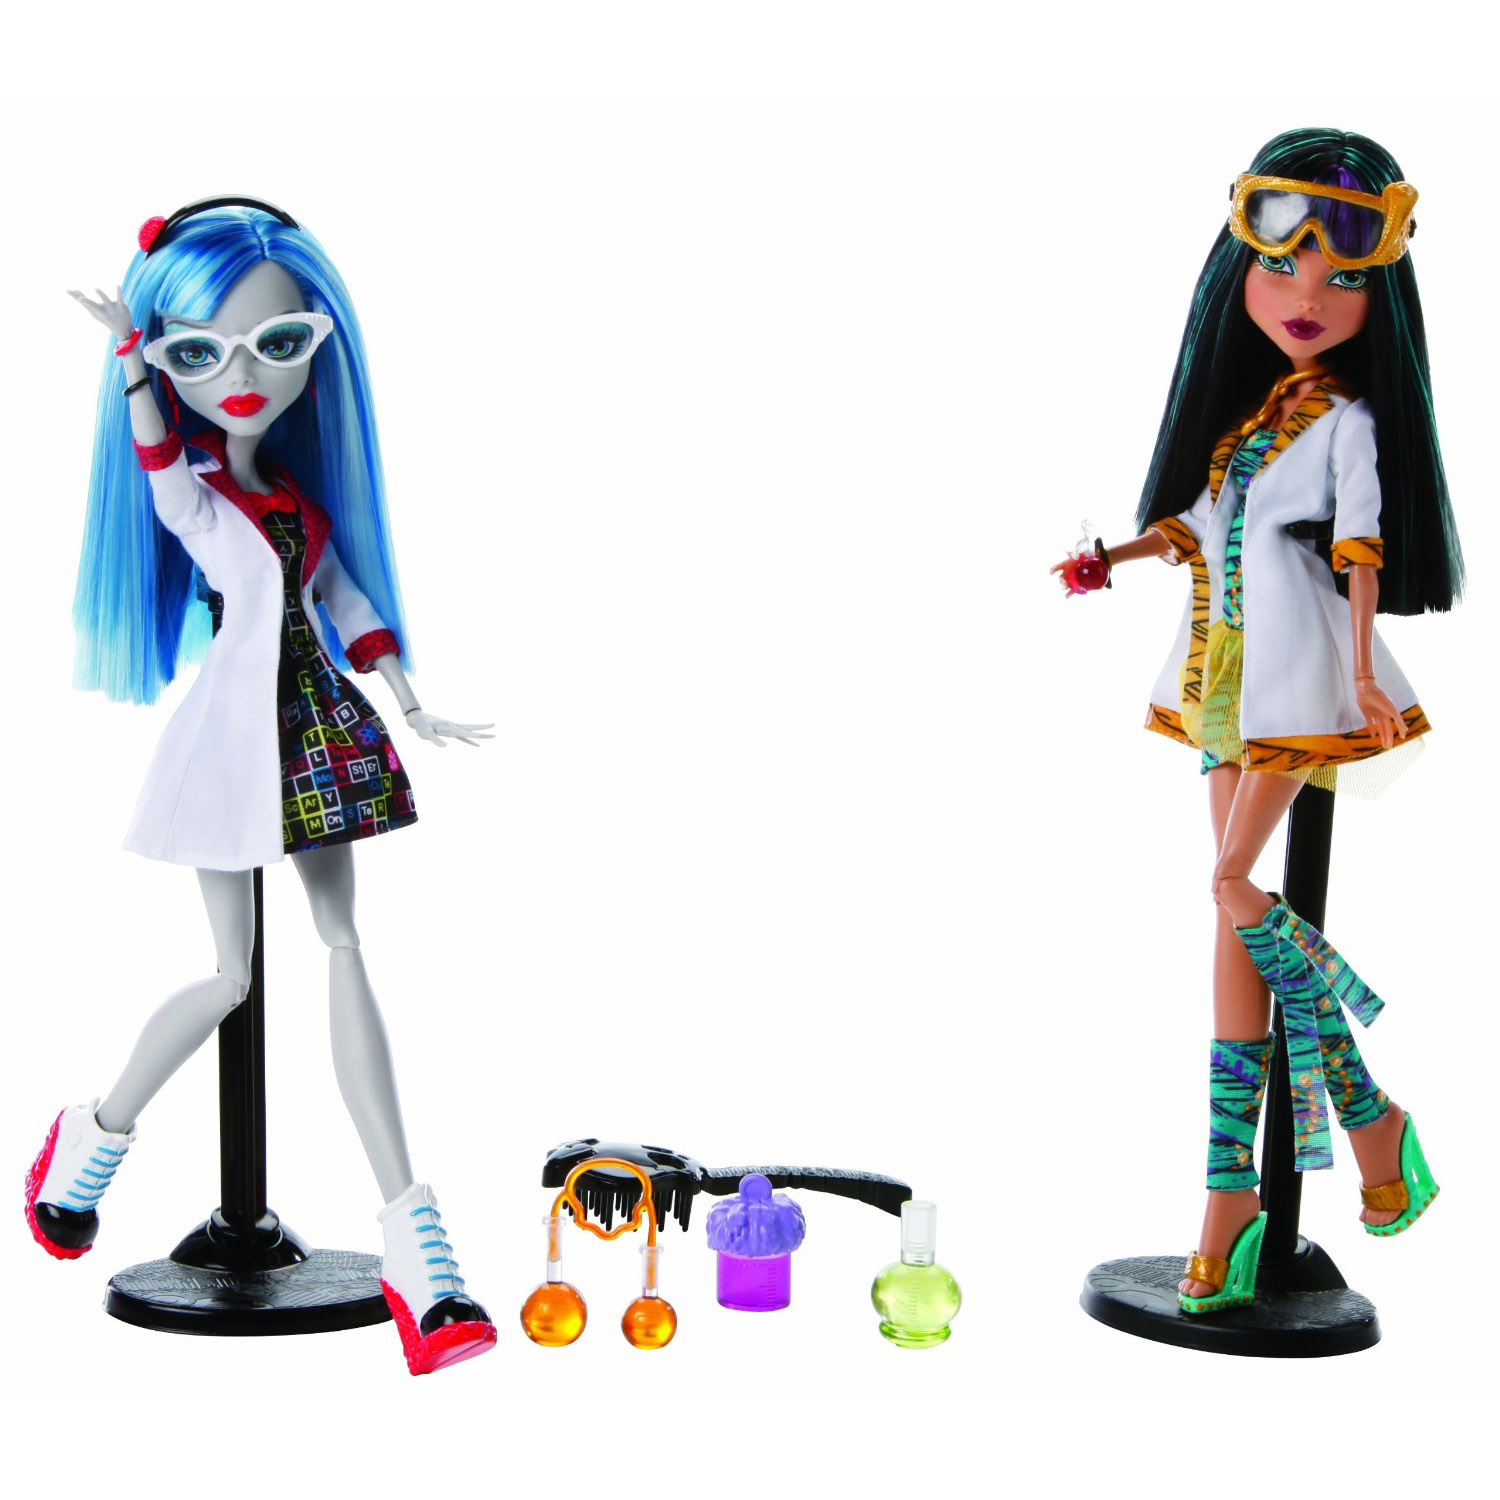 Monster High Toys : Monster high toys classroom pack cleo de nile and